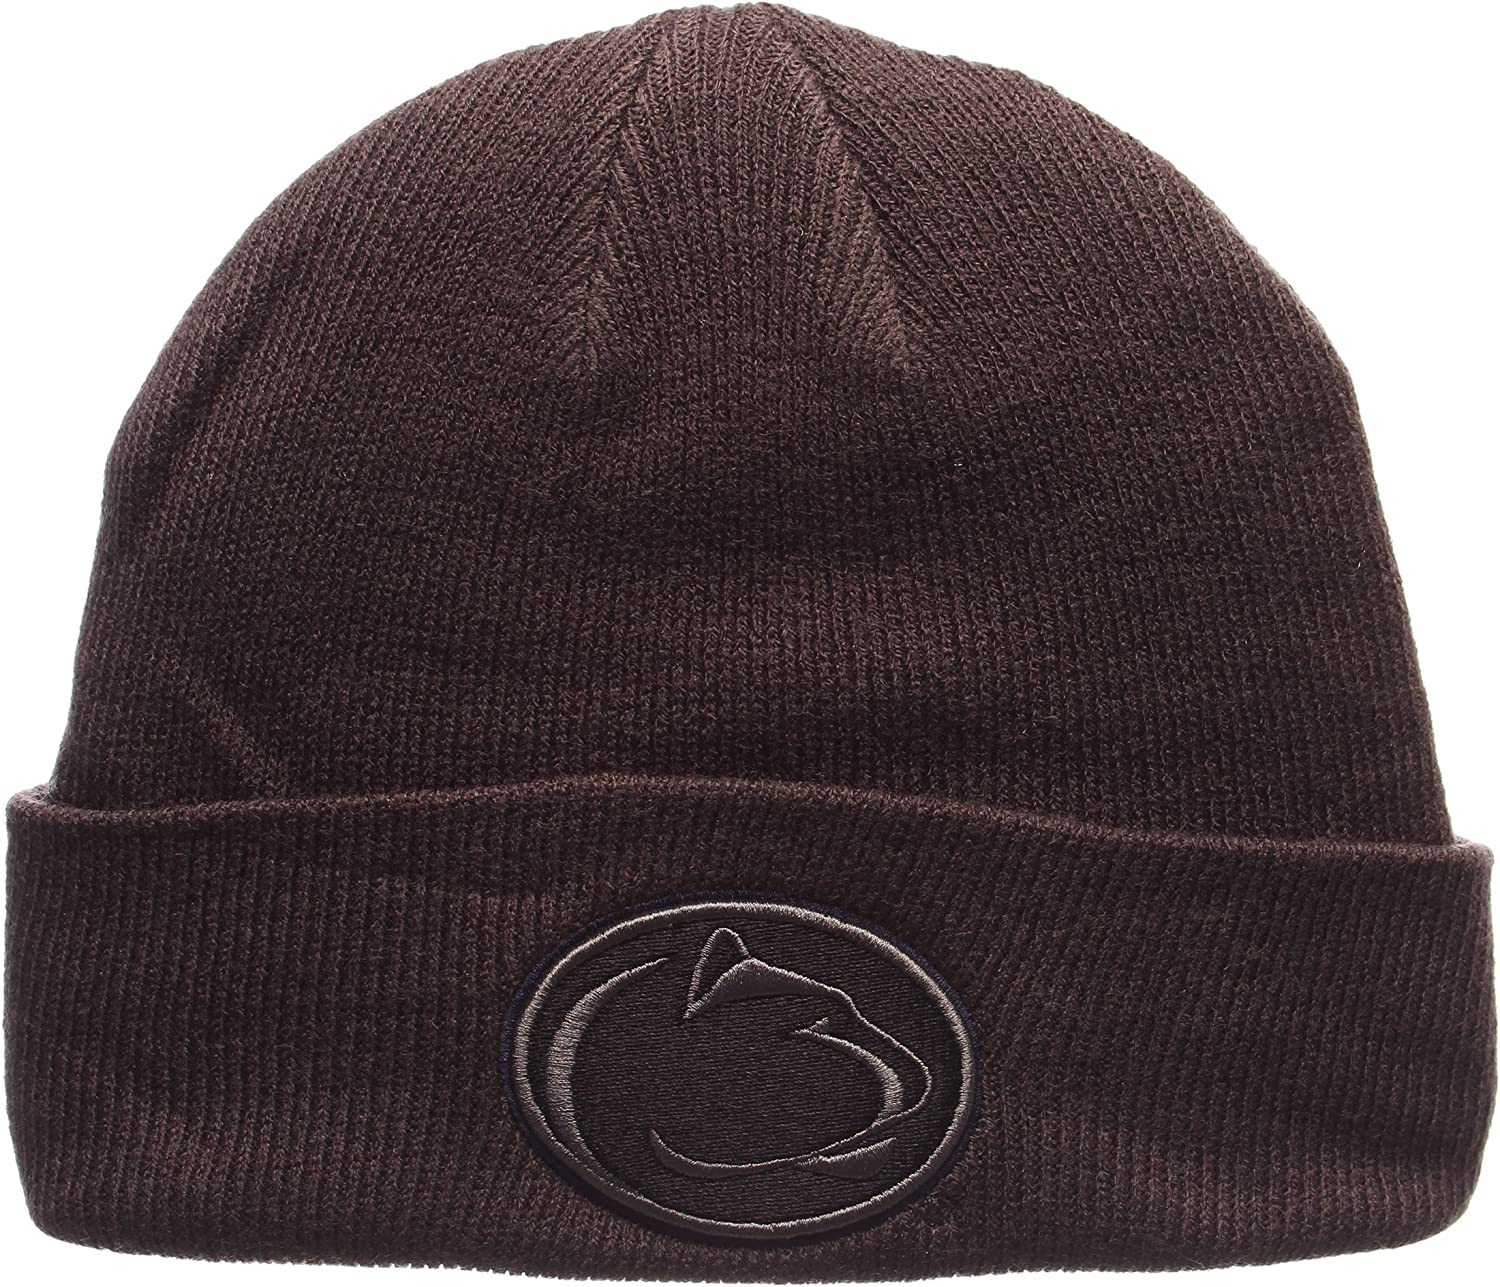 Zephyr Charcoal Gray X-RAY POP Cuff Beanie Hat NCAA Cuffed Winter Knit Toque Cap